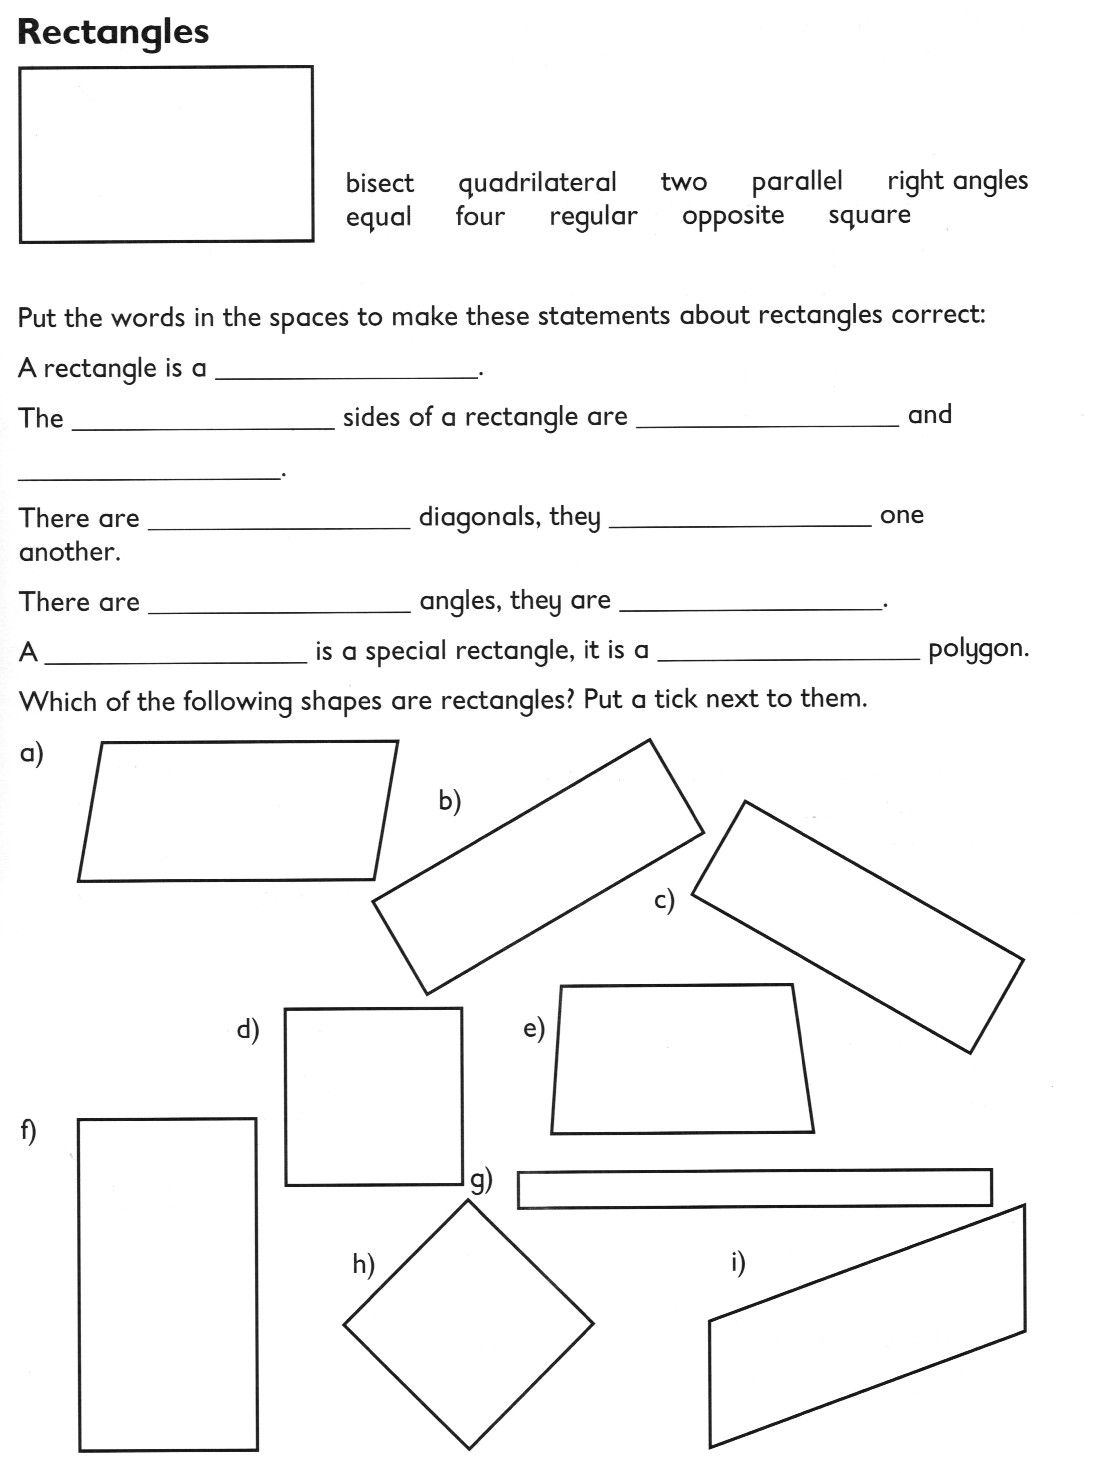 Compare and classify geometric shapes including